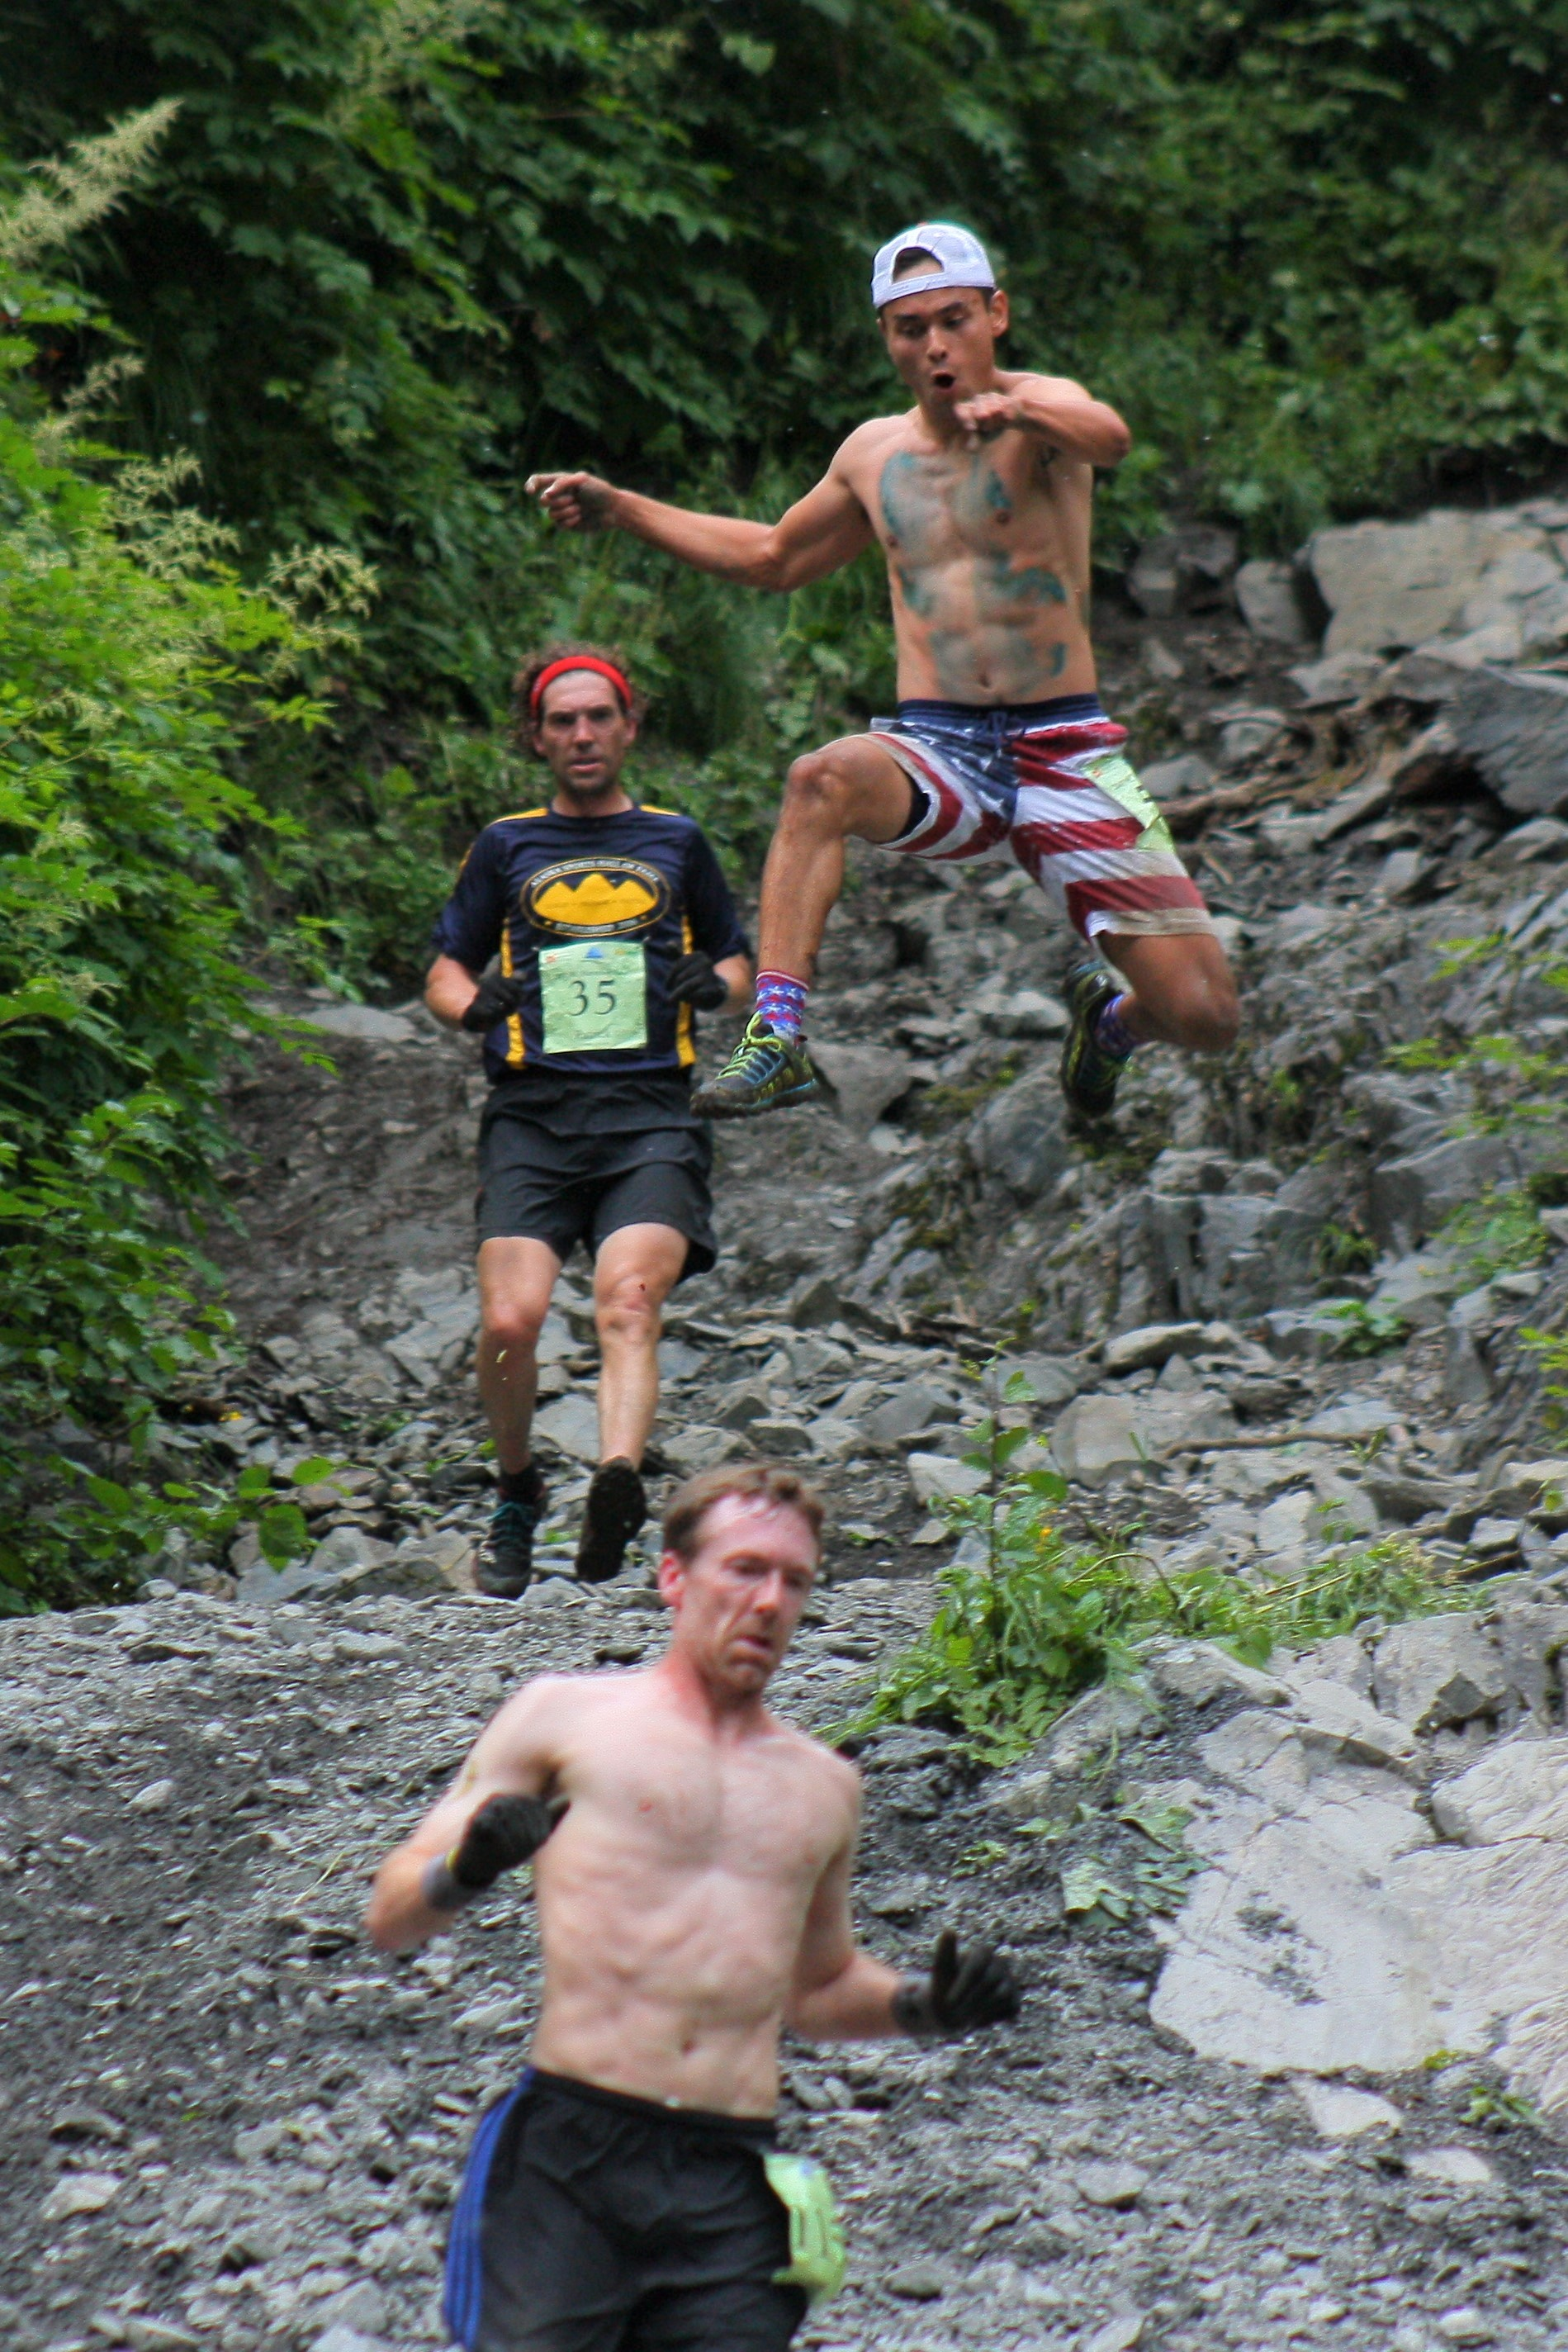 Tadhg Nakada leaps from 'glory rock' during the 2017 Mount Marathon Race on July 4. Nakada finished 38th in the men's division, and was among the many participants who mug for the camera as they come off the mountain every year.